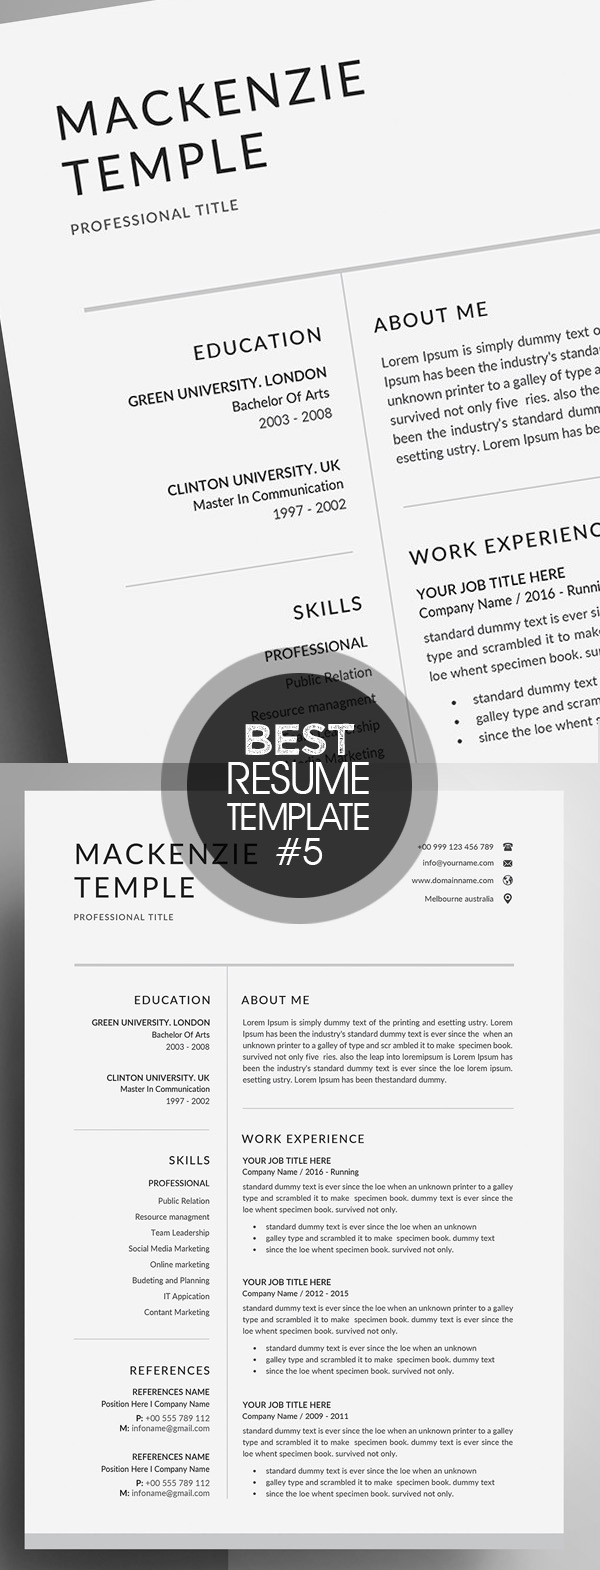 Resume Template | CV + Cover Letter